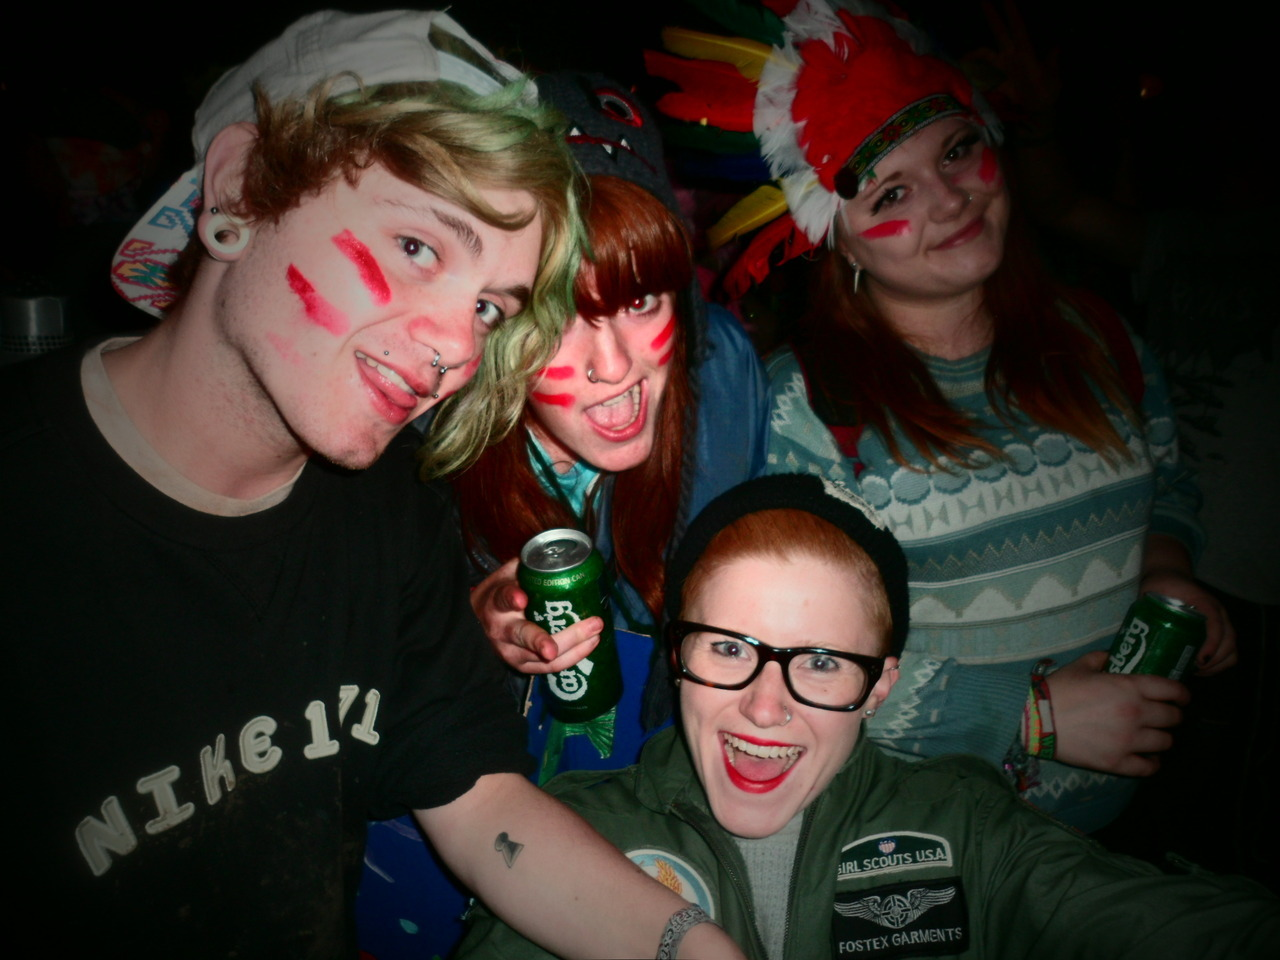 moi and the mandem at Beat herder festival 2012. Banging weekend.